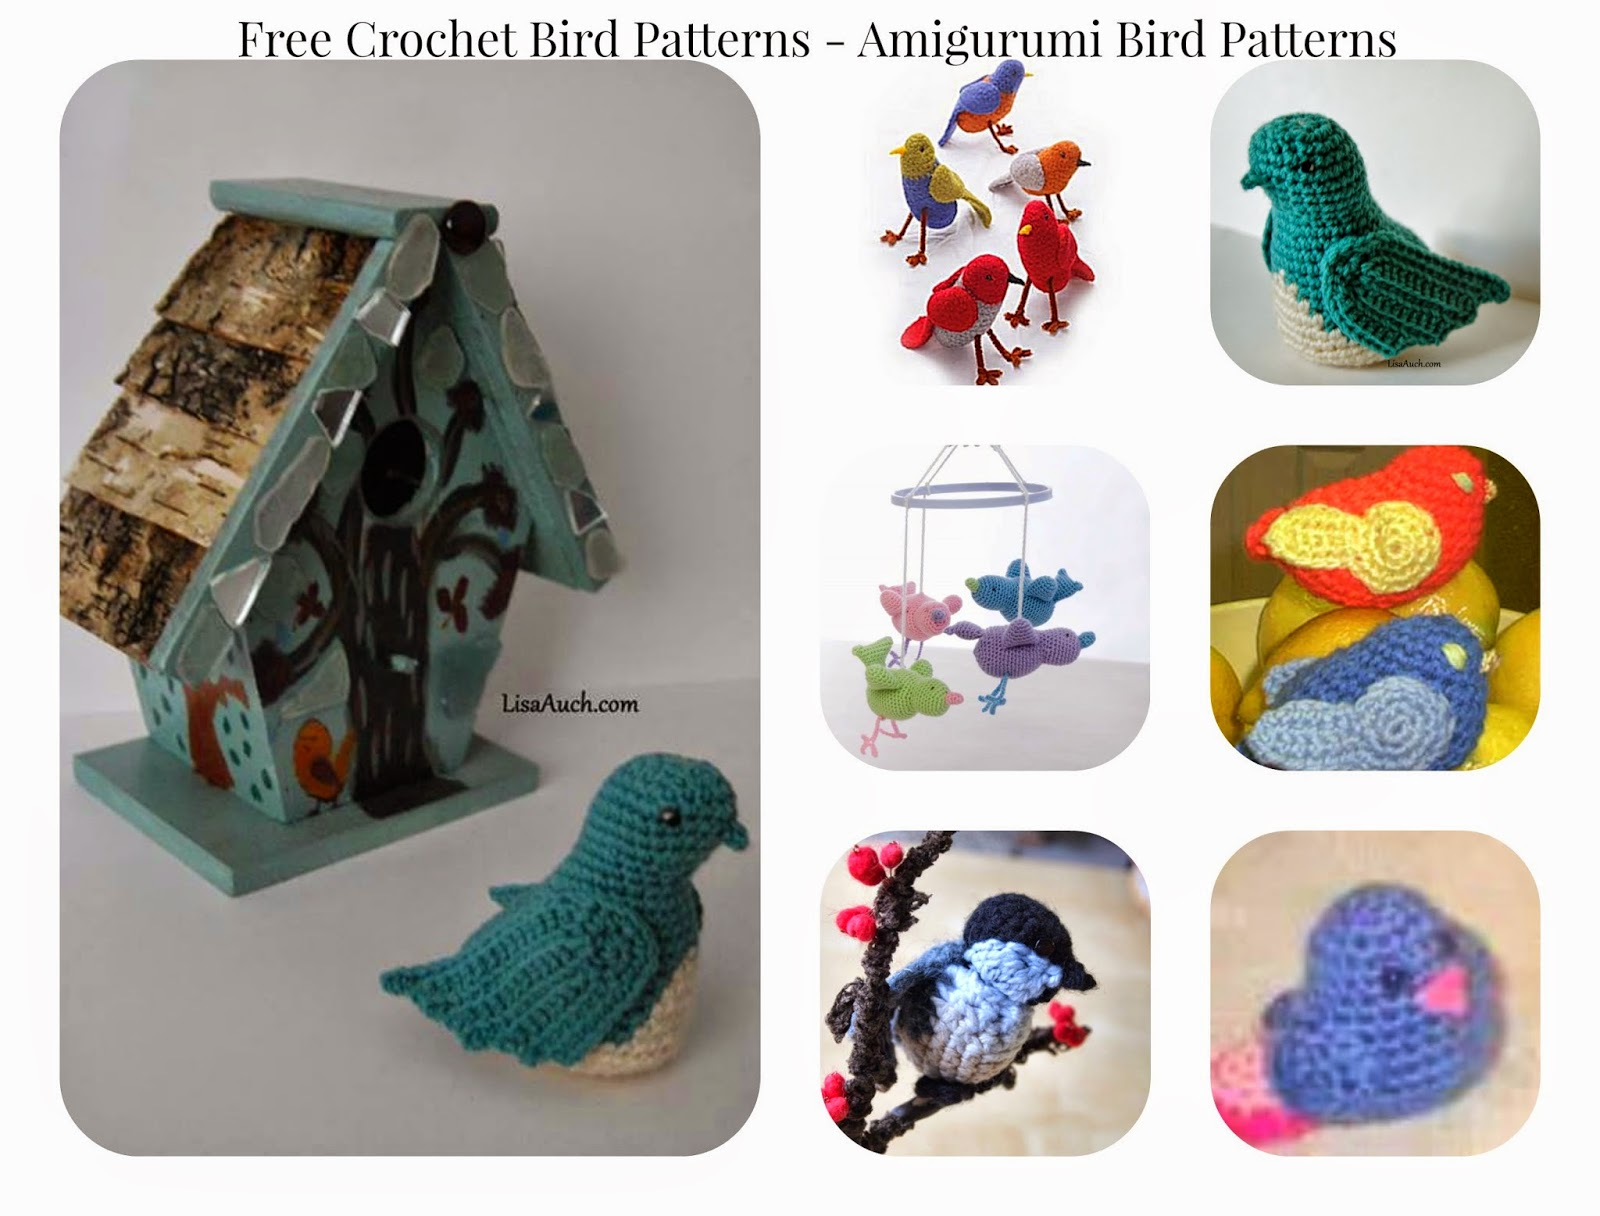 Free crochet Bird Pattern-amigurumi bird free pattern-free crochet patterns